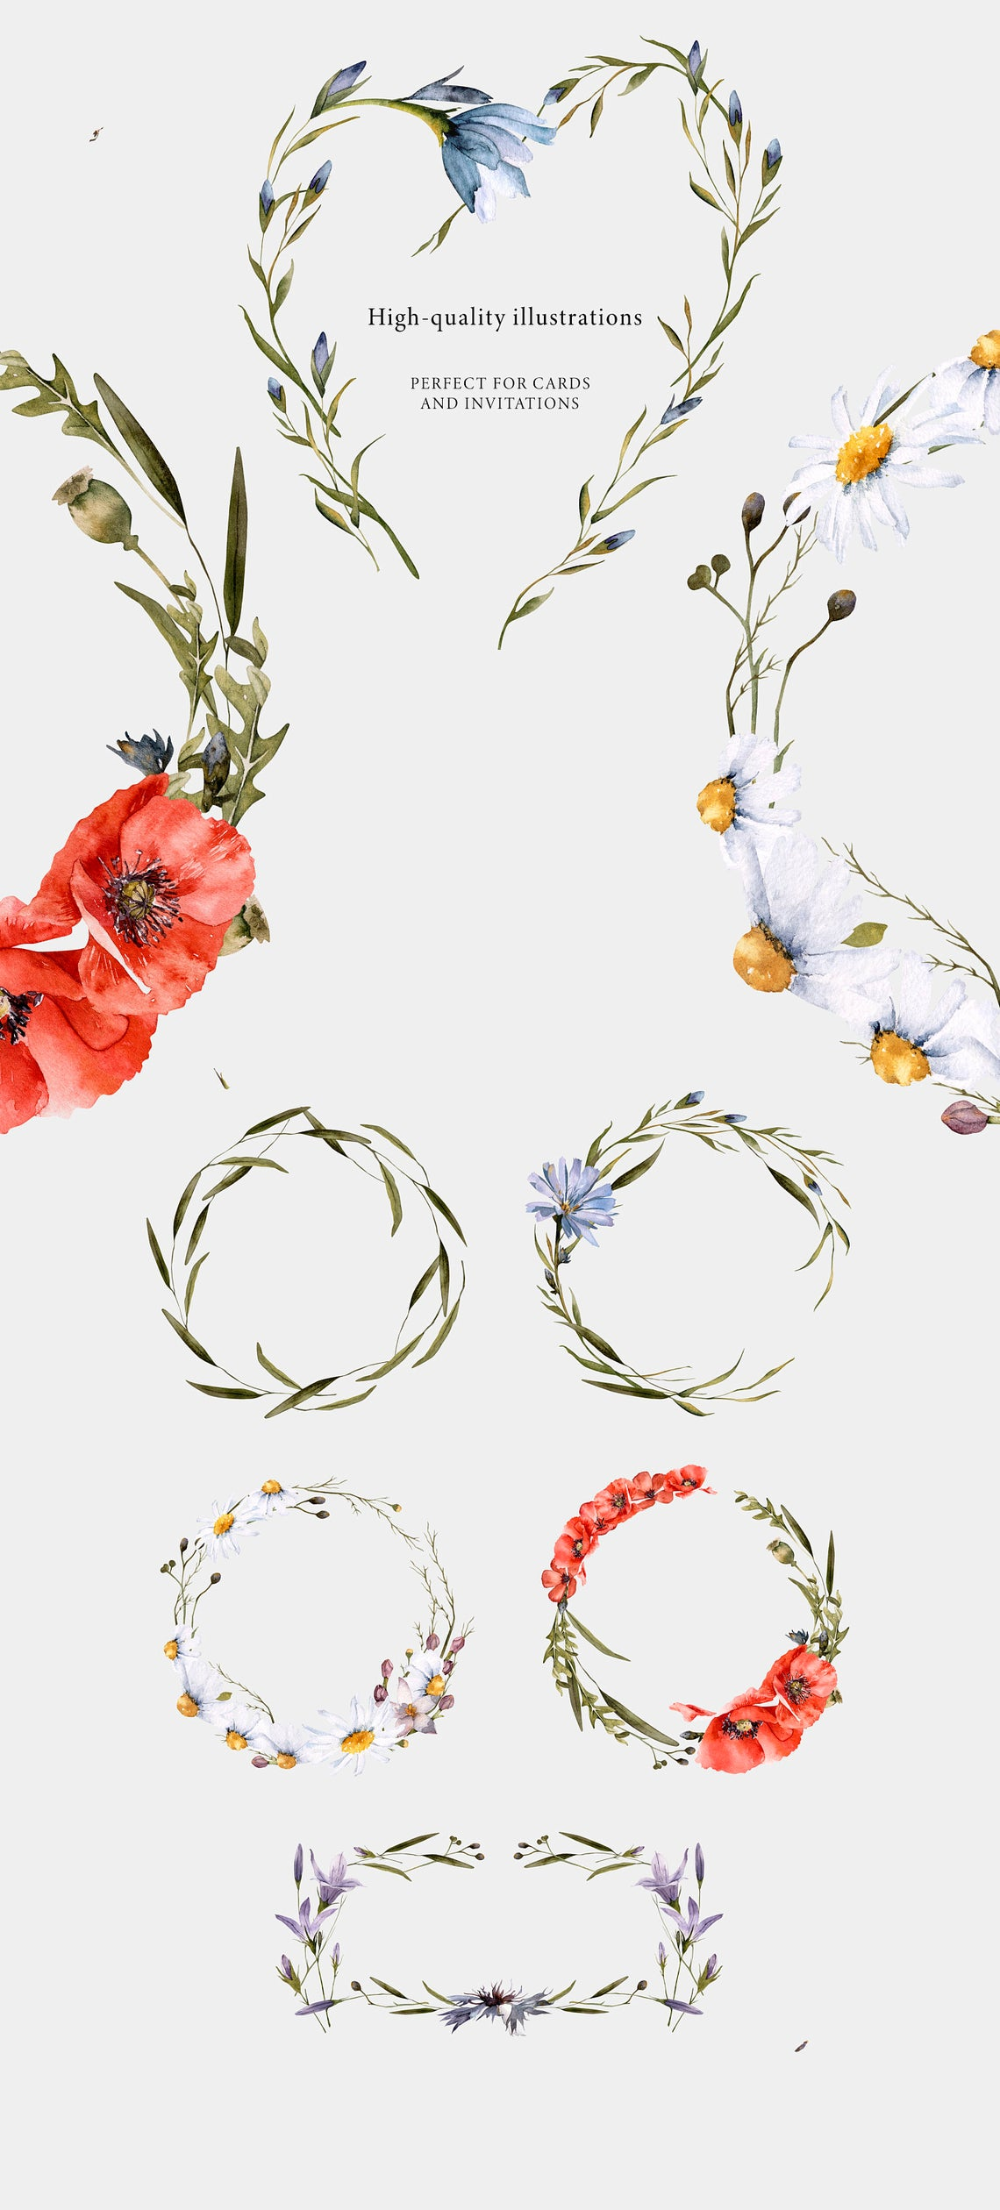 Wedding floral clipart Watercolor meadow wreath with wildflowers: chamomile Watercolor wreath clipart PNG centaury foliage